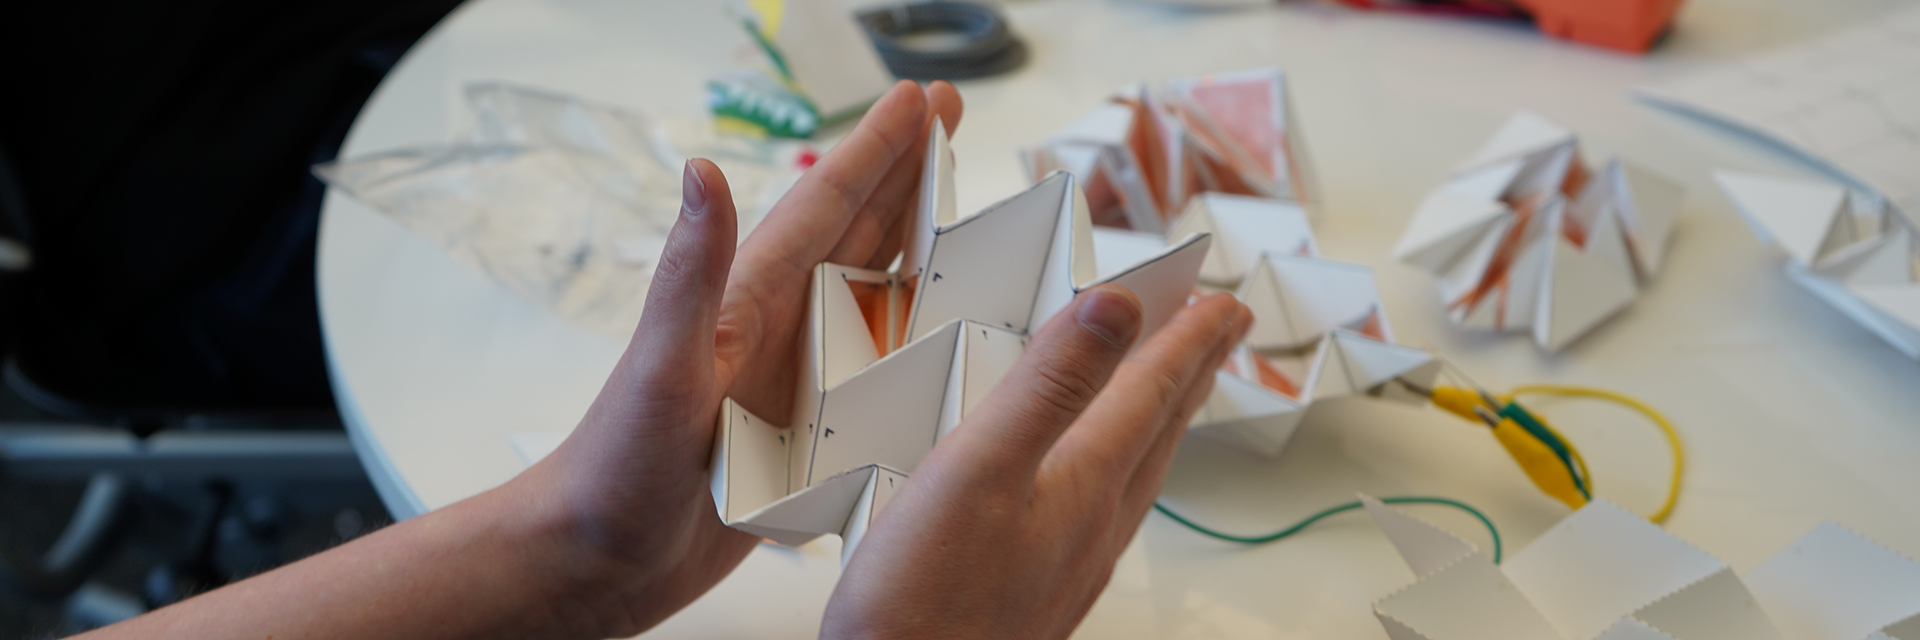 Hands squeezing power generating origami.